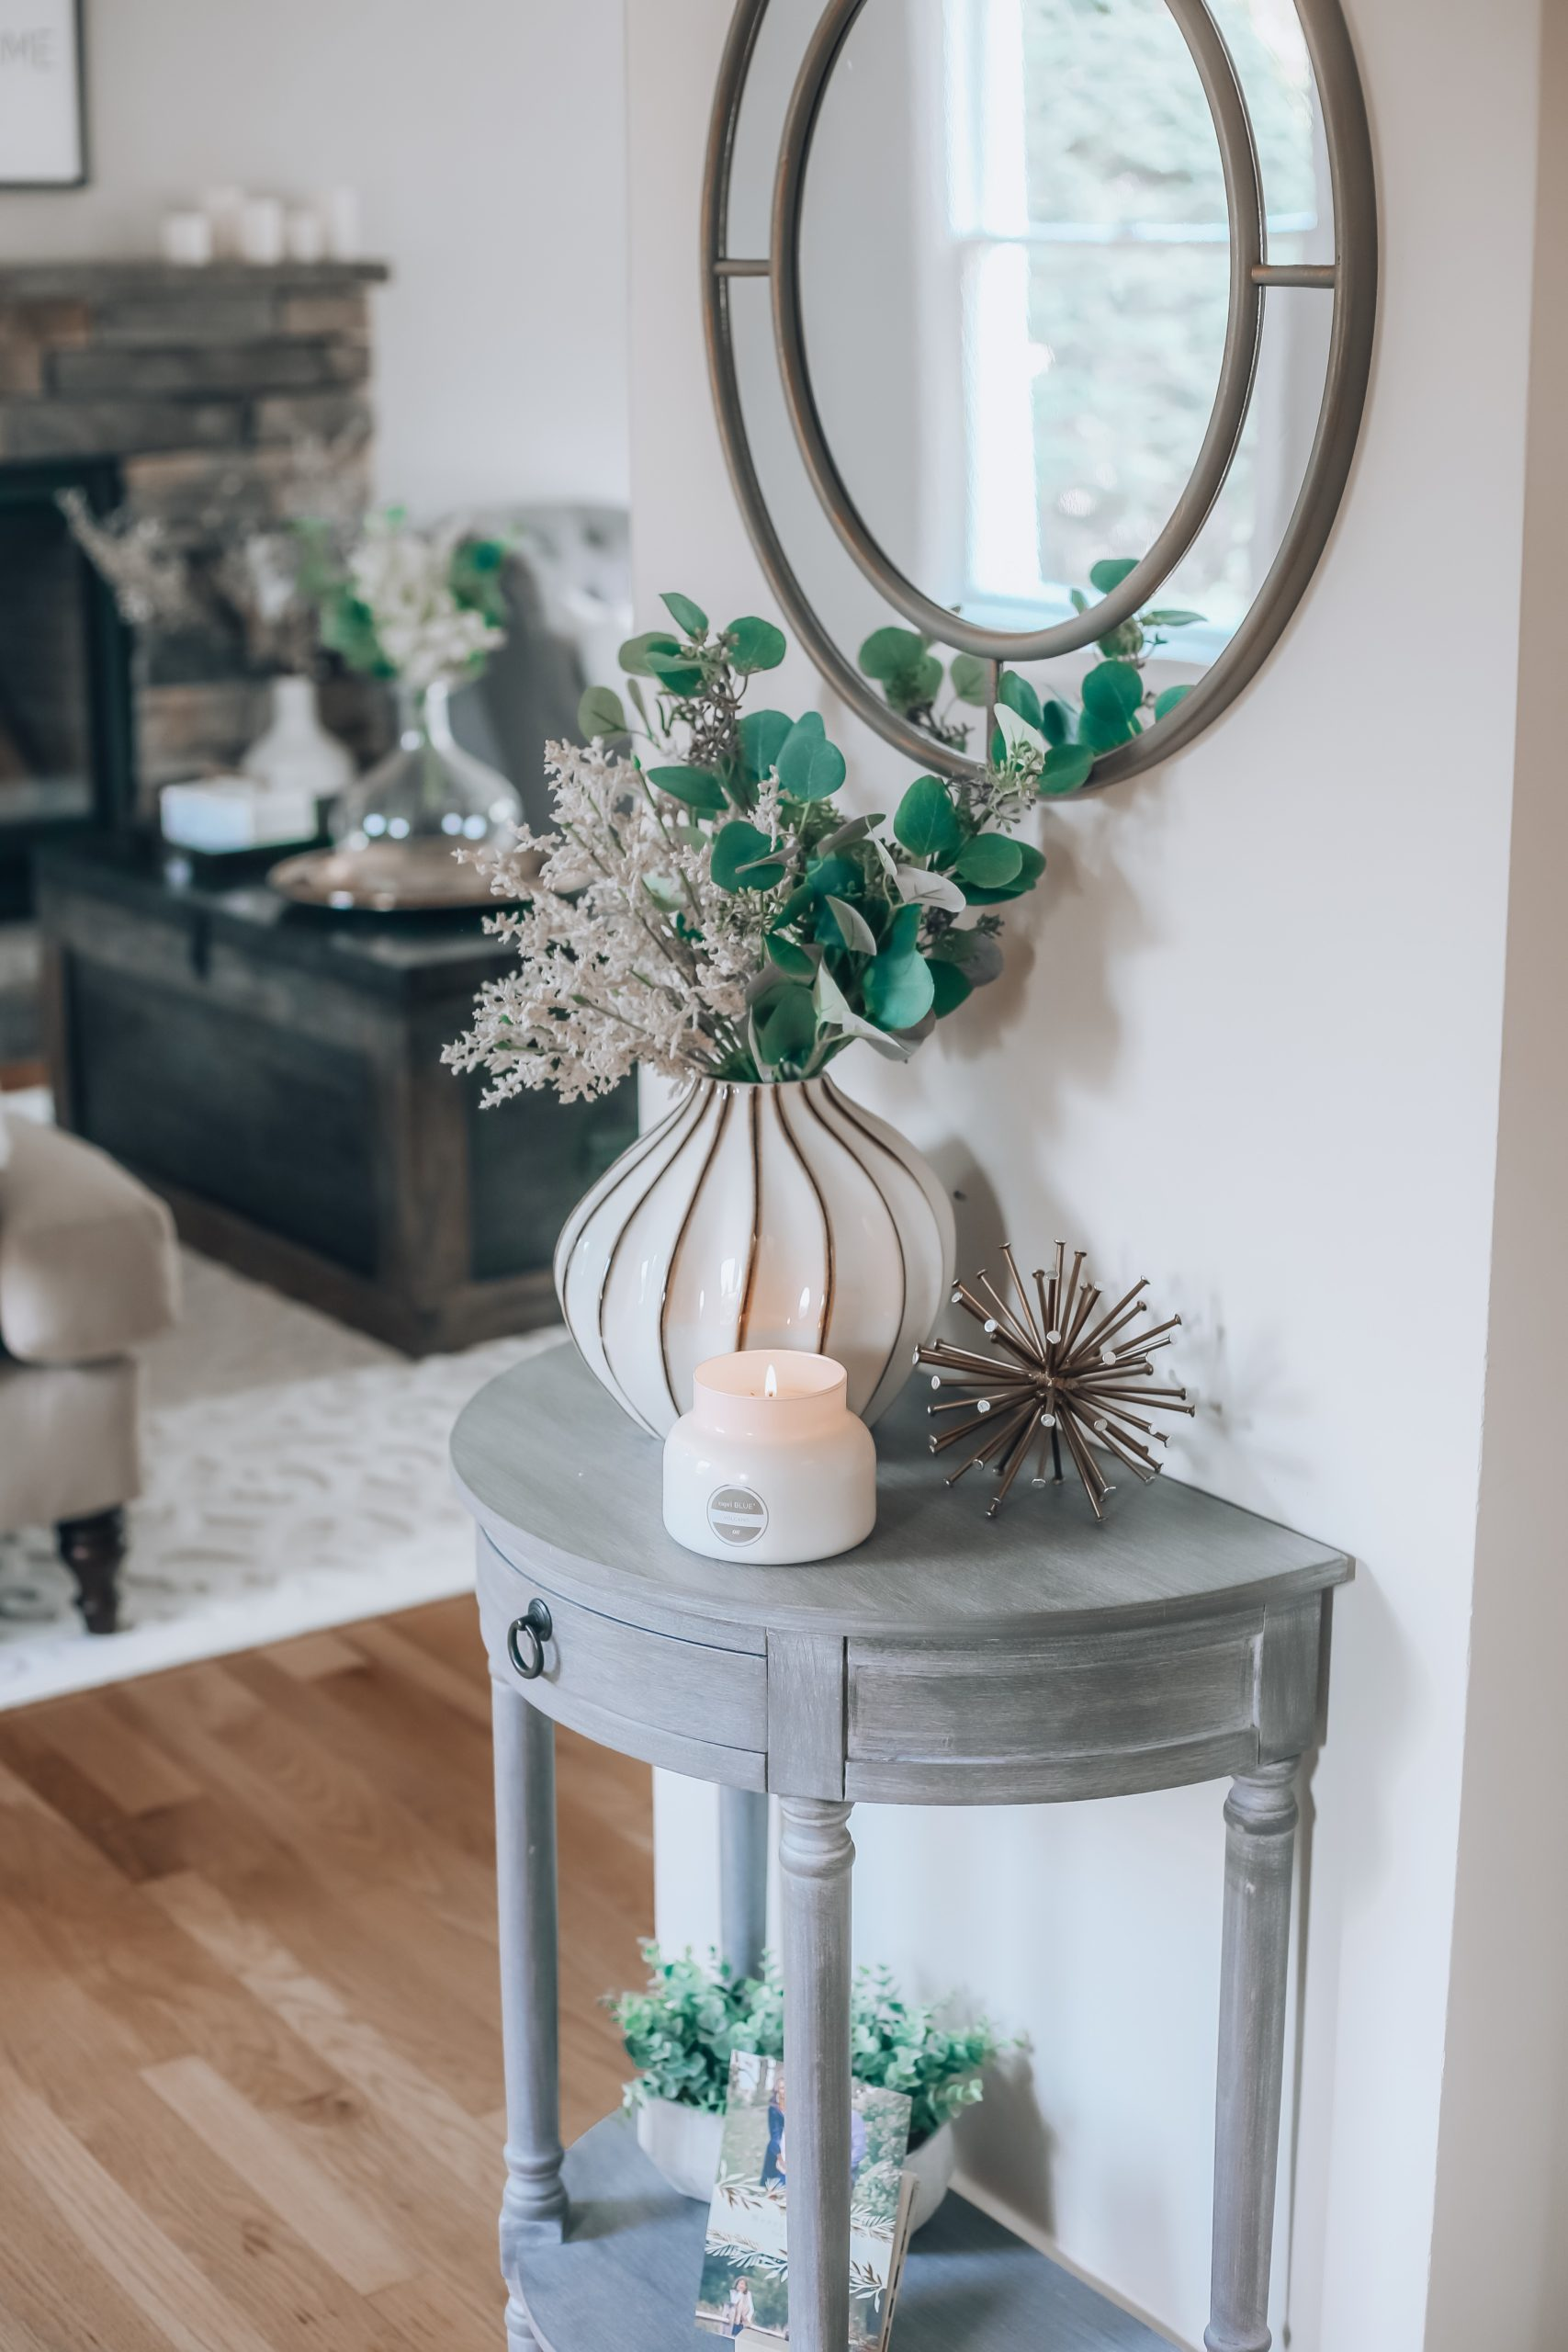 Making House a Home with Capri Blue Candles